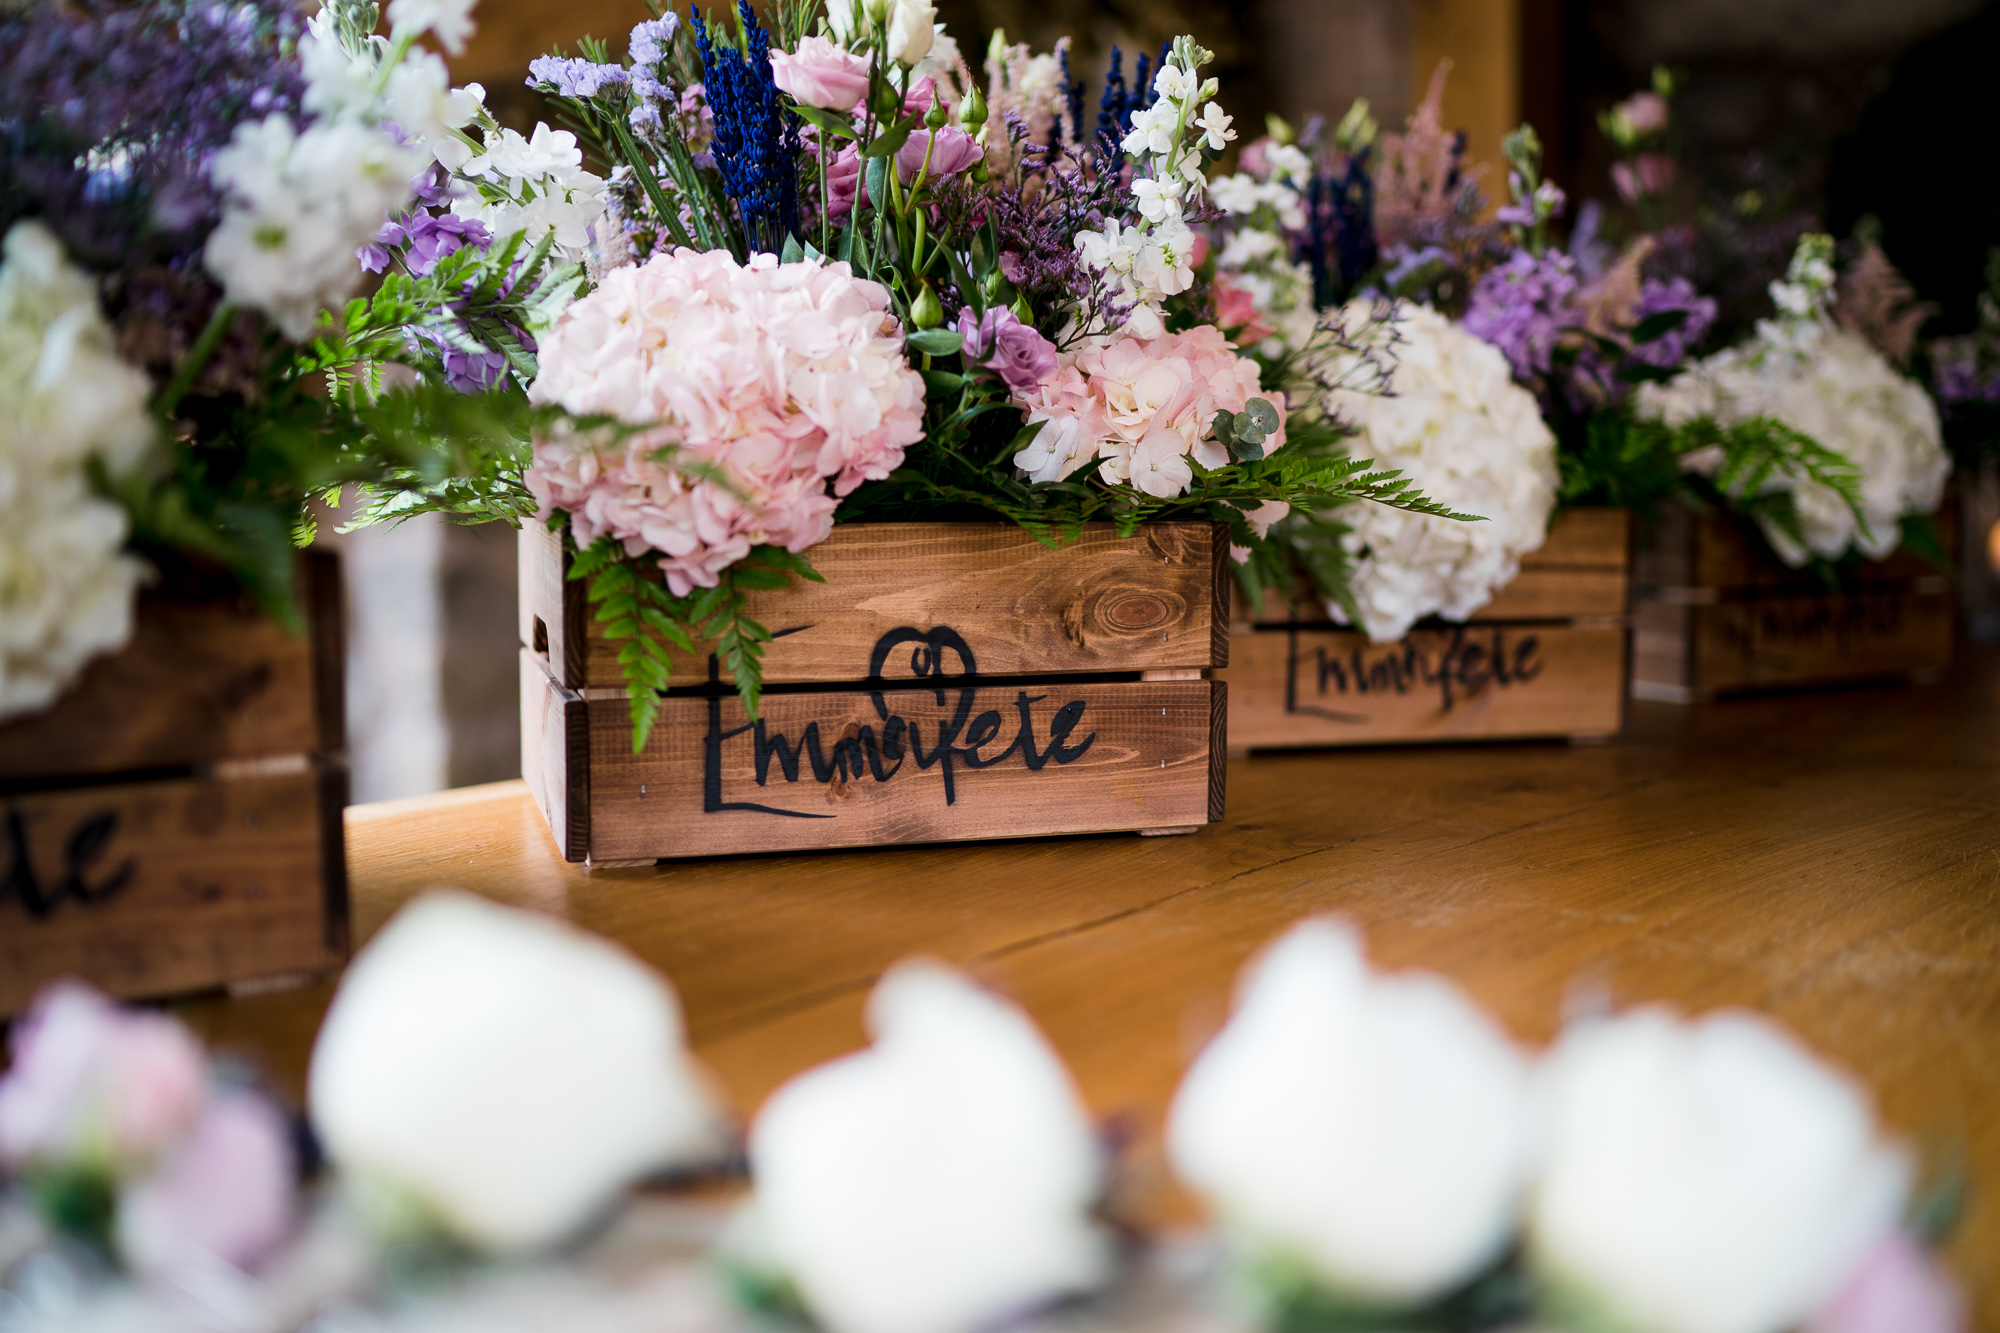 Tower Hill BArn Wedding Photographer based in north west england (6 of 35).jpg